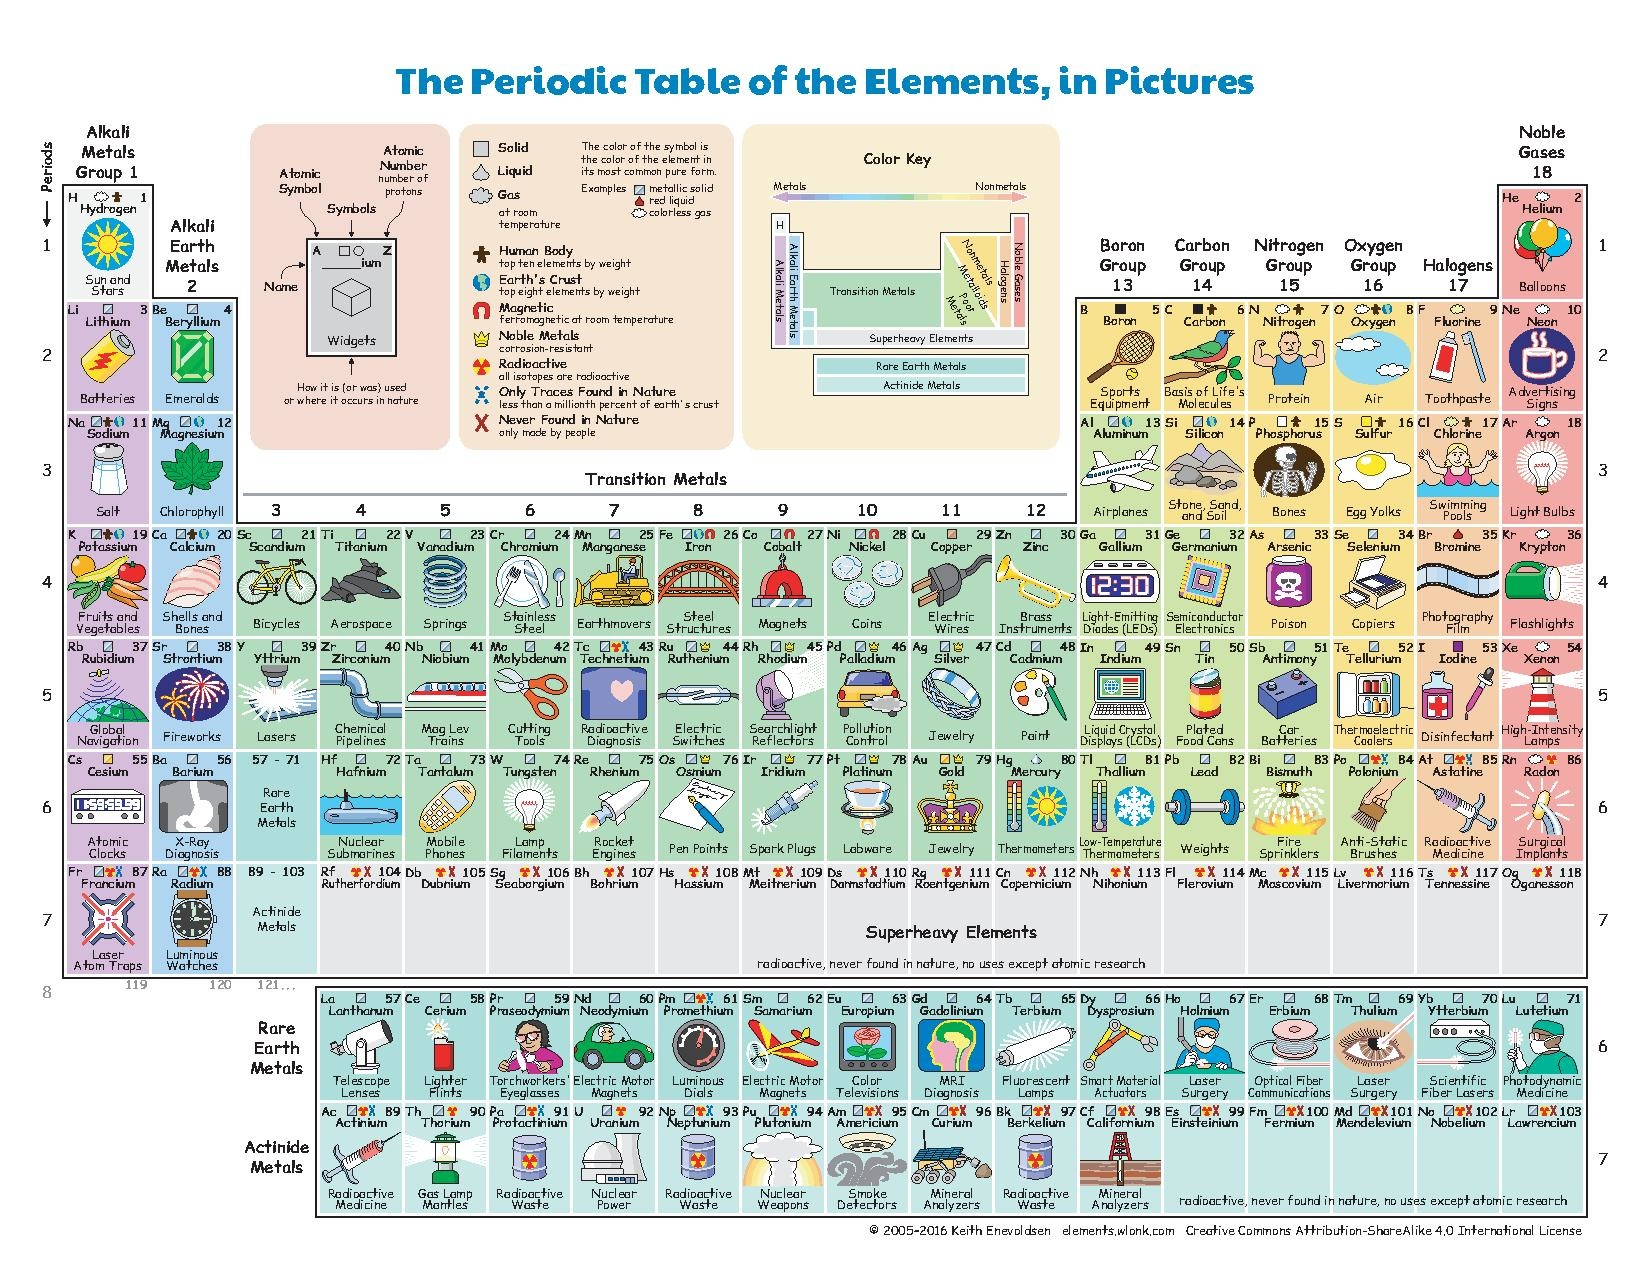 filethe periodic table of the elements in picturespdf - Periodic Table Of Elements And Their Uses Pdf